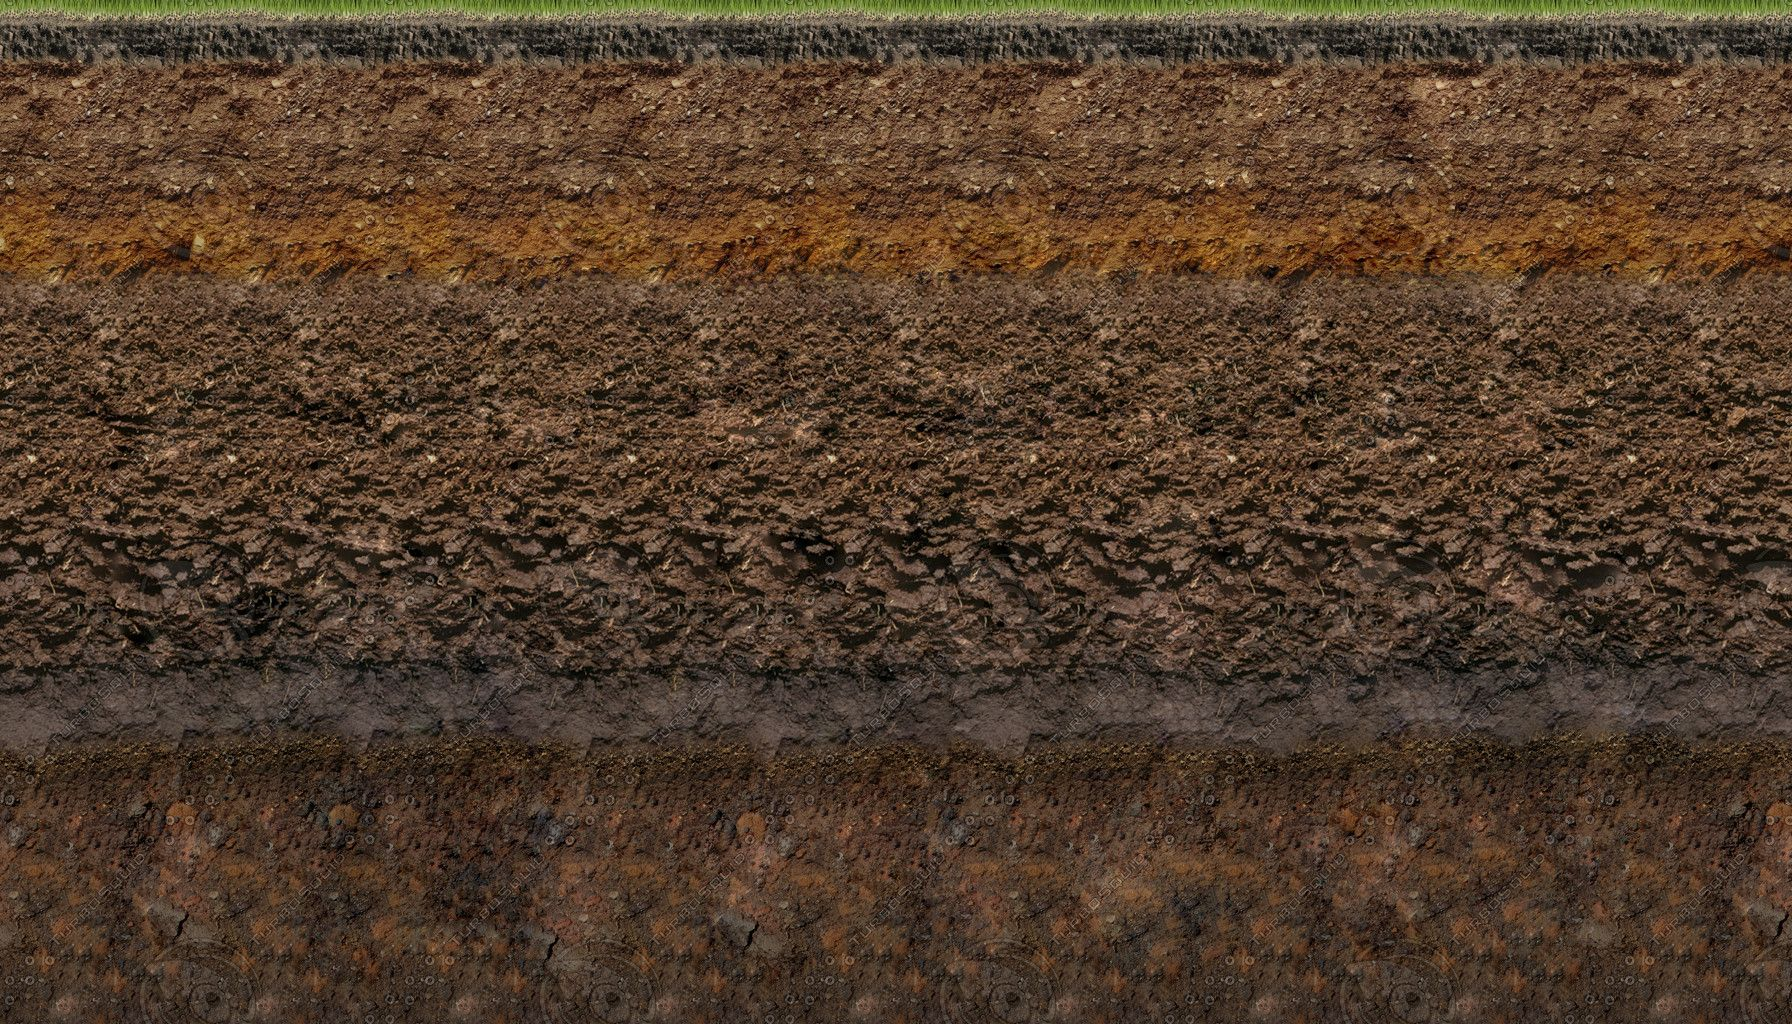 Pin By Ellen Phillips On Soil With Images Soil Layers Layers